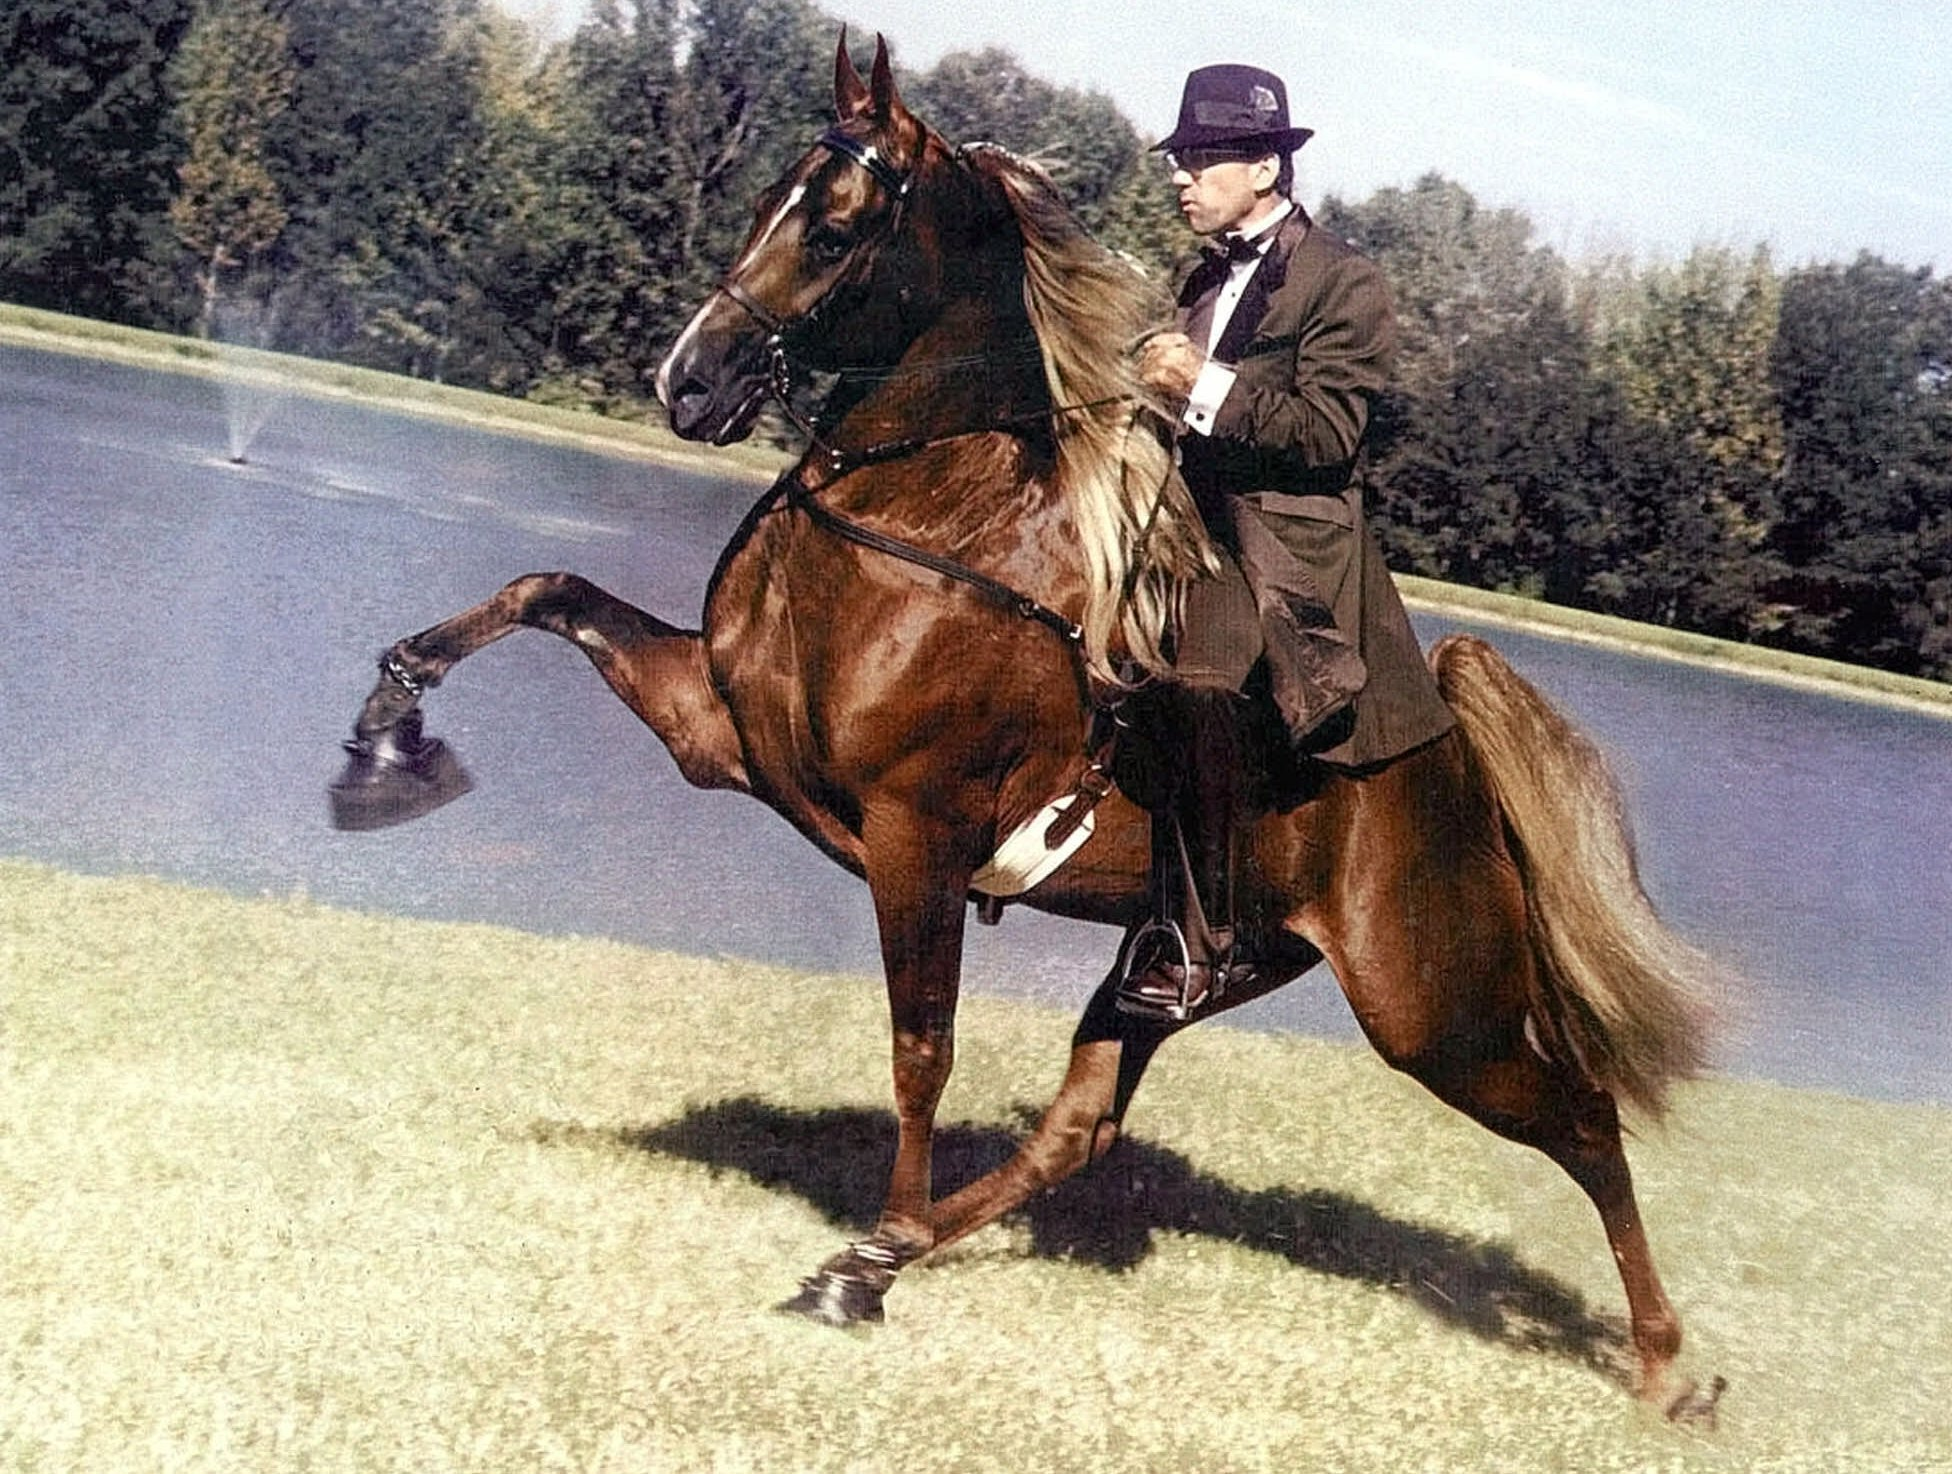 A Tennessee Walking Horse with chains and large, heavy weights attached to its hooves. Both would be banned under Whitfield's legislation. (AP Photo/Courtesy Harrell Brawner, File)